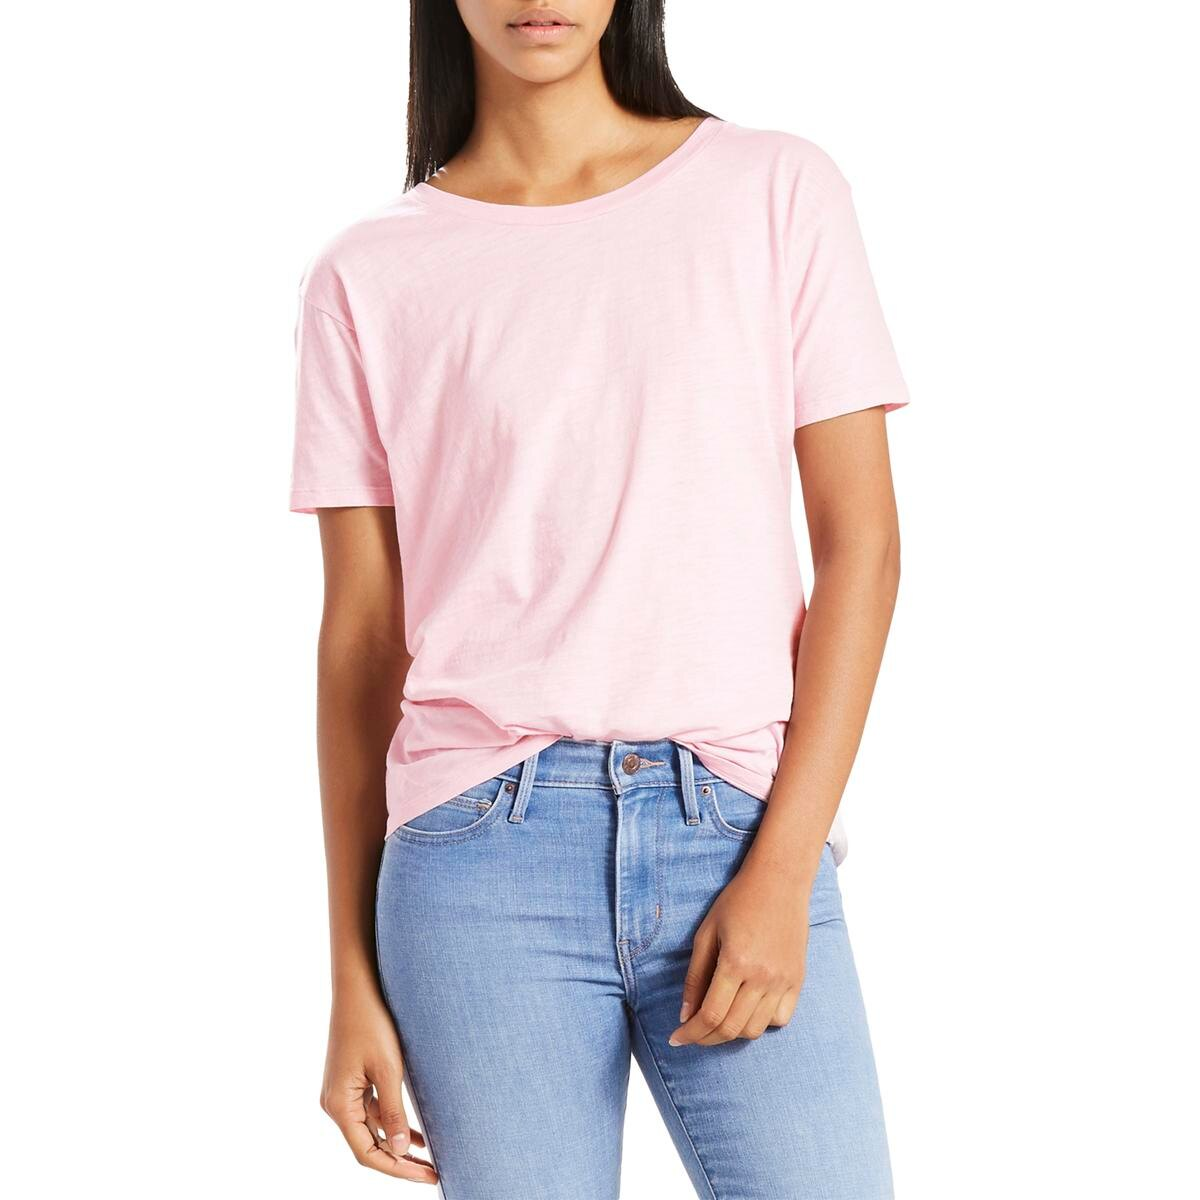 Levi-039-s-Women-039-s-Top-Blouse-Pink-Size-Small-S-Knit-Tee-Tie-Back-T-Shirt-346